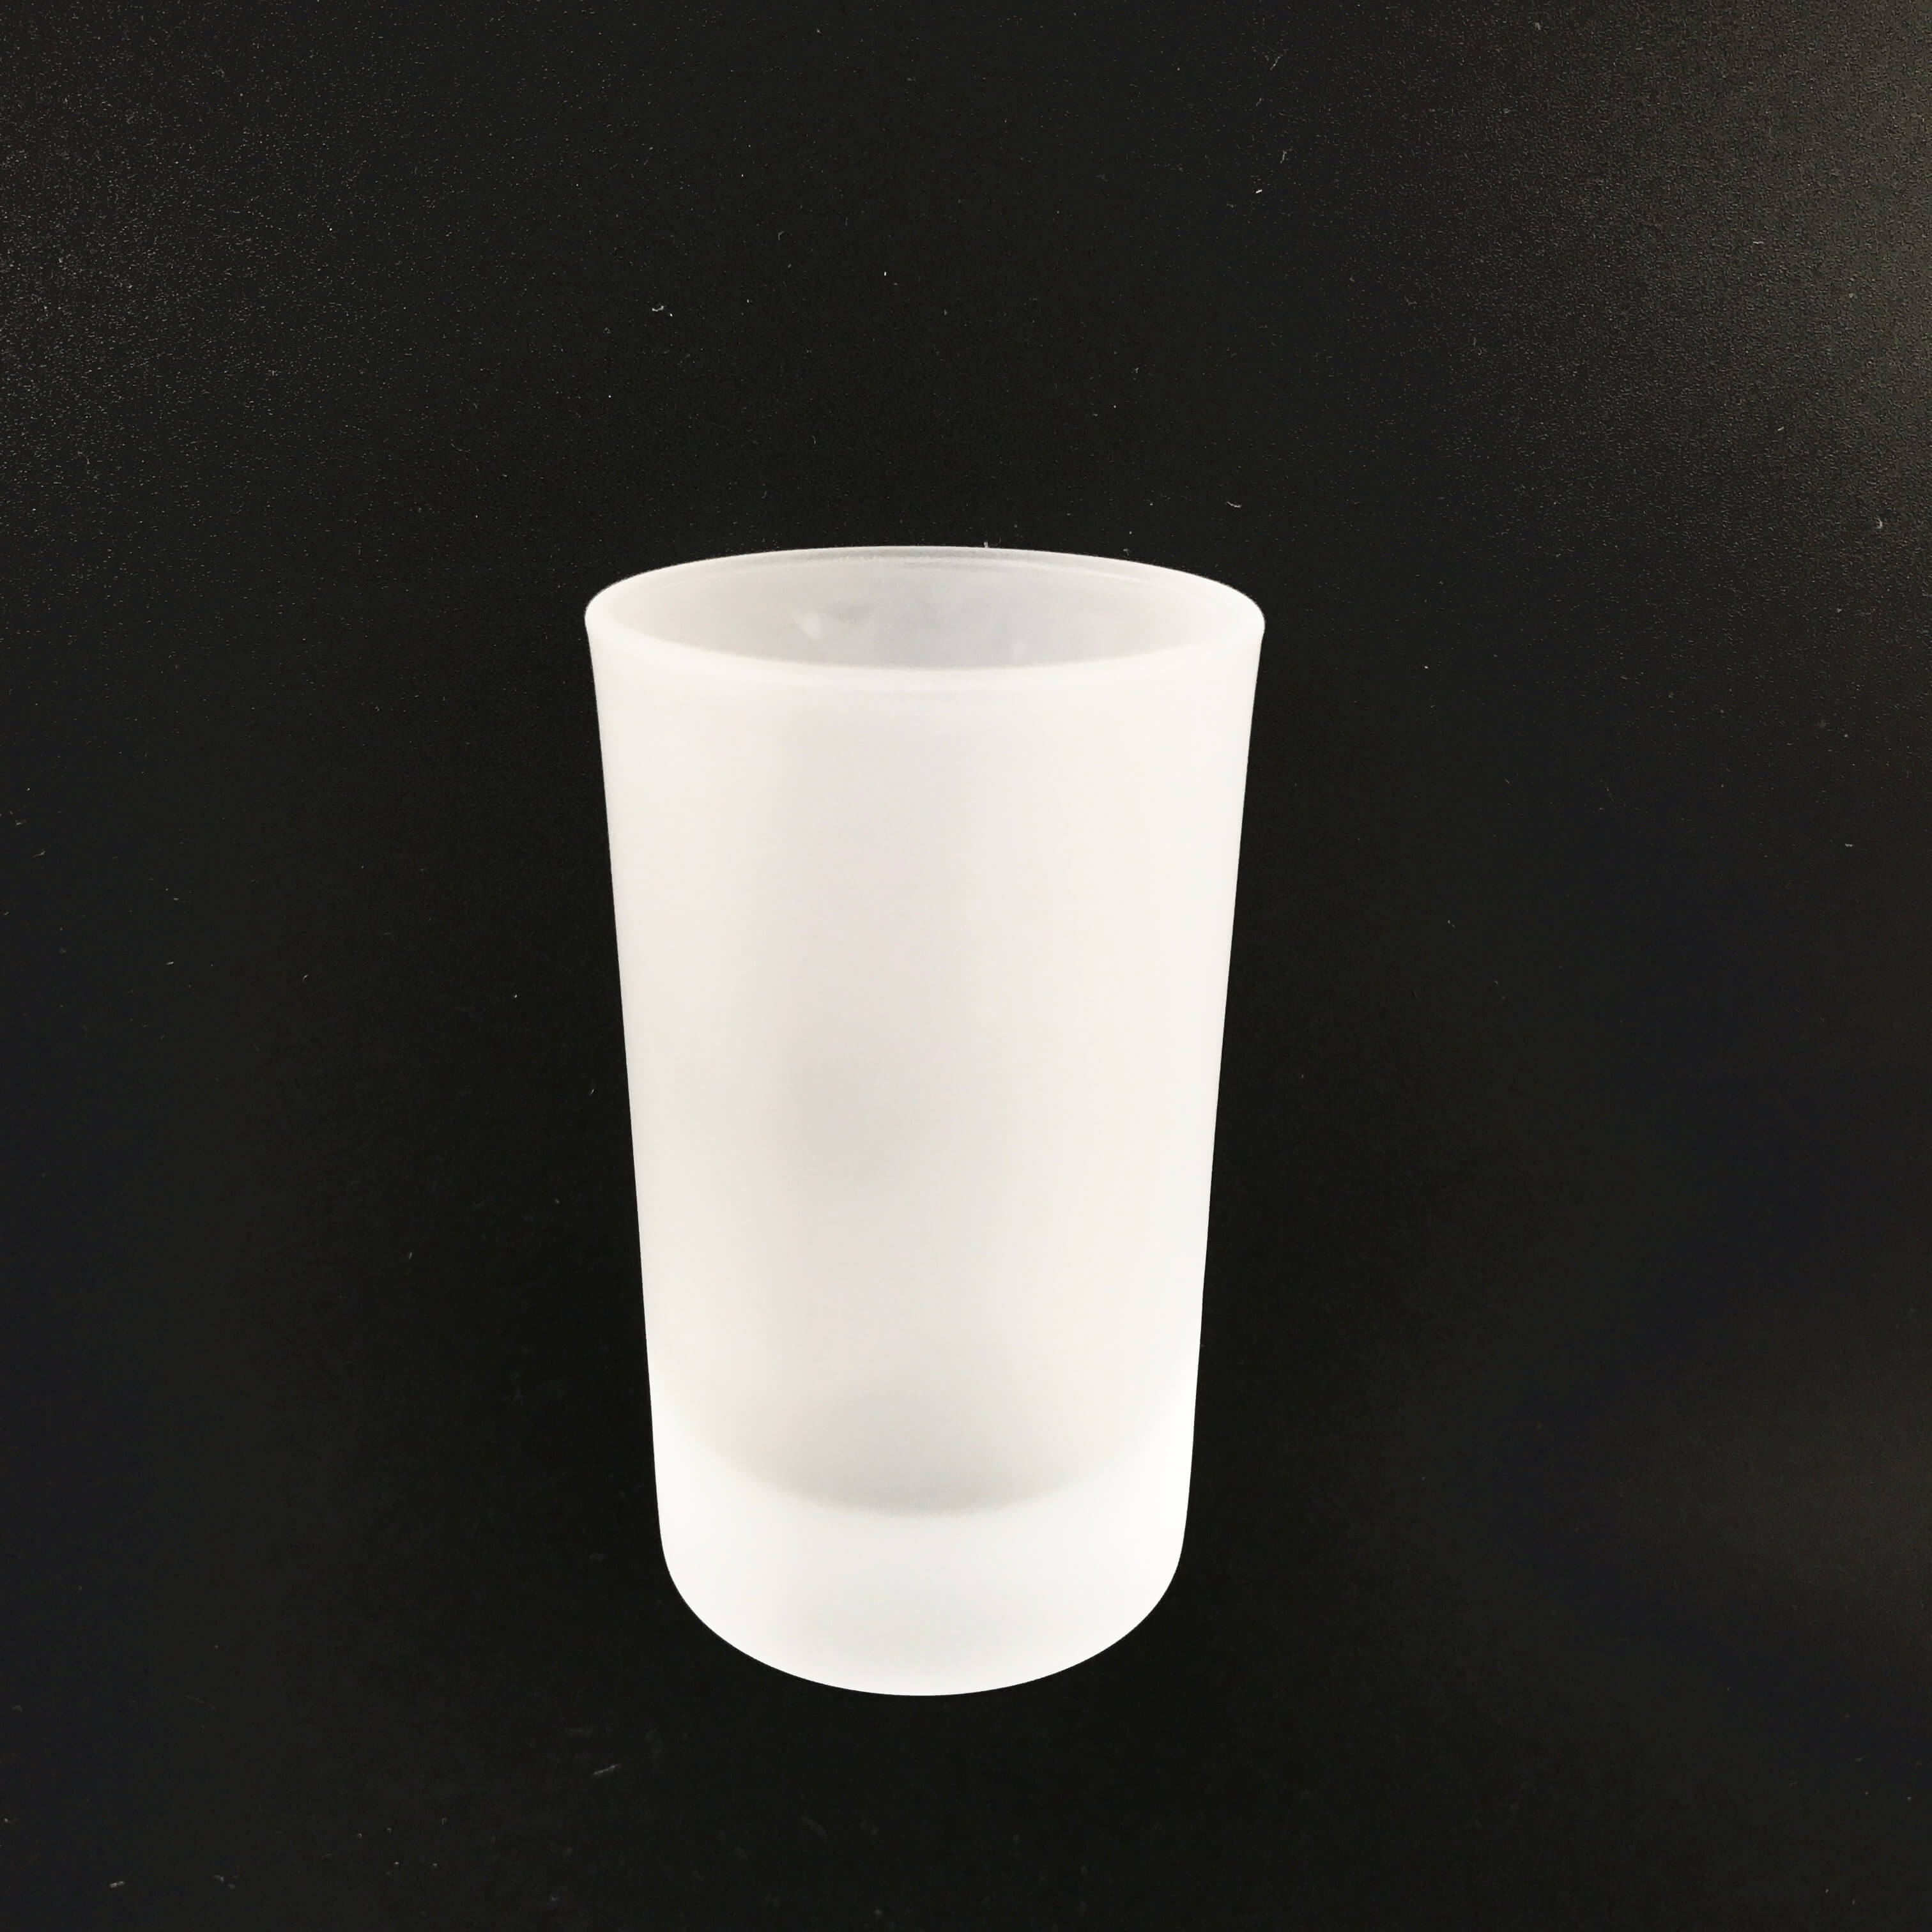 Frosted Shot Glasses 2 6oz 75ml Its Glassware Specialist